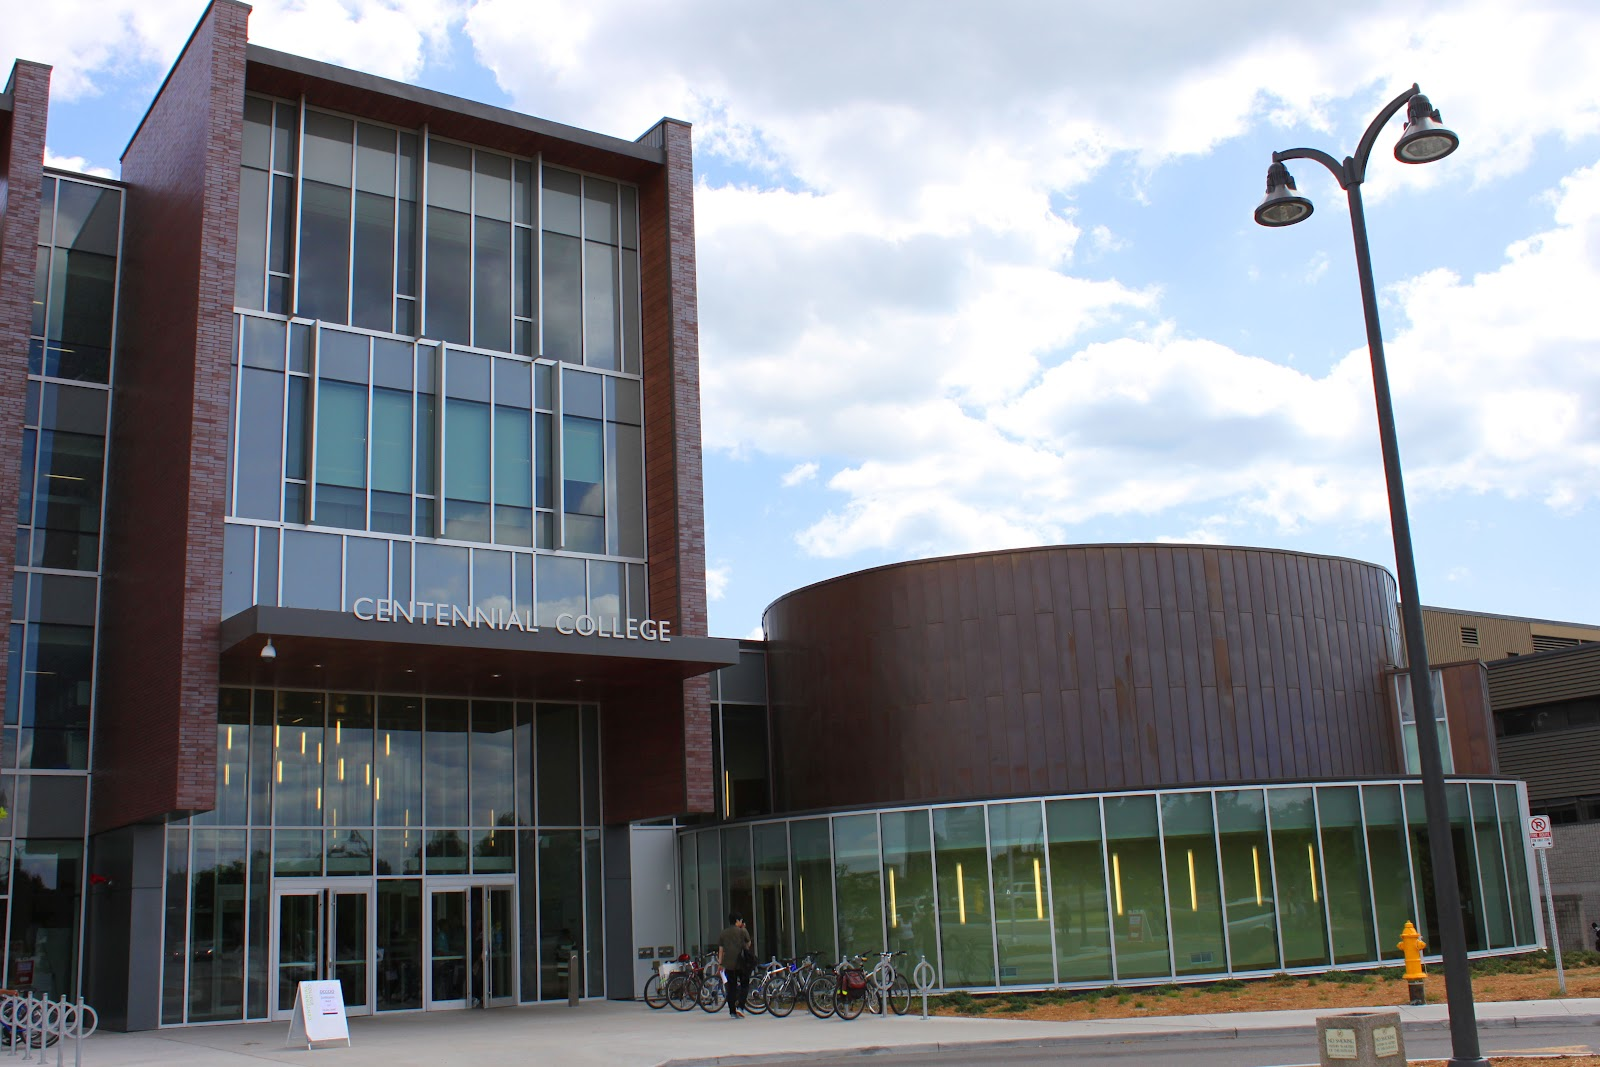 ontario universities creative writing programs The university of guelph creative writing mfa offers workshops in fiction, creative nonfiction, drama and poetry.